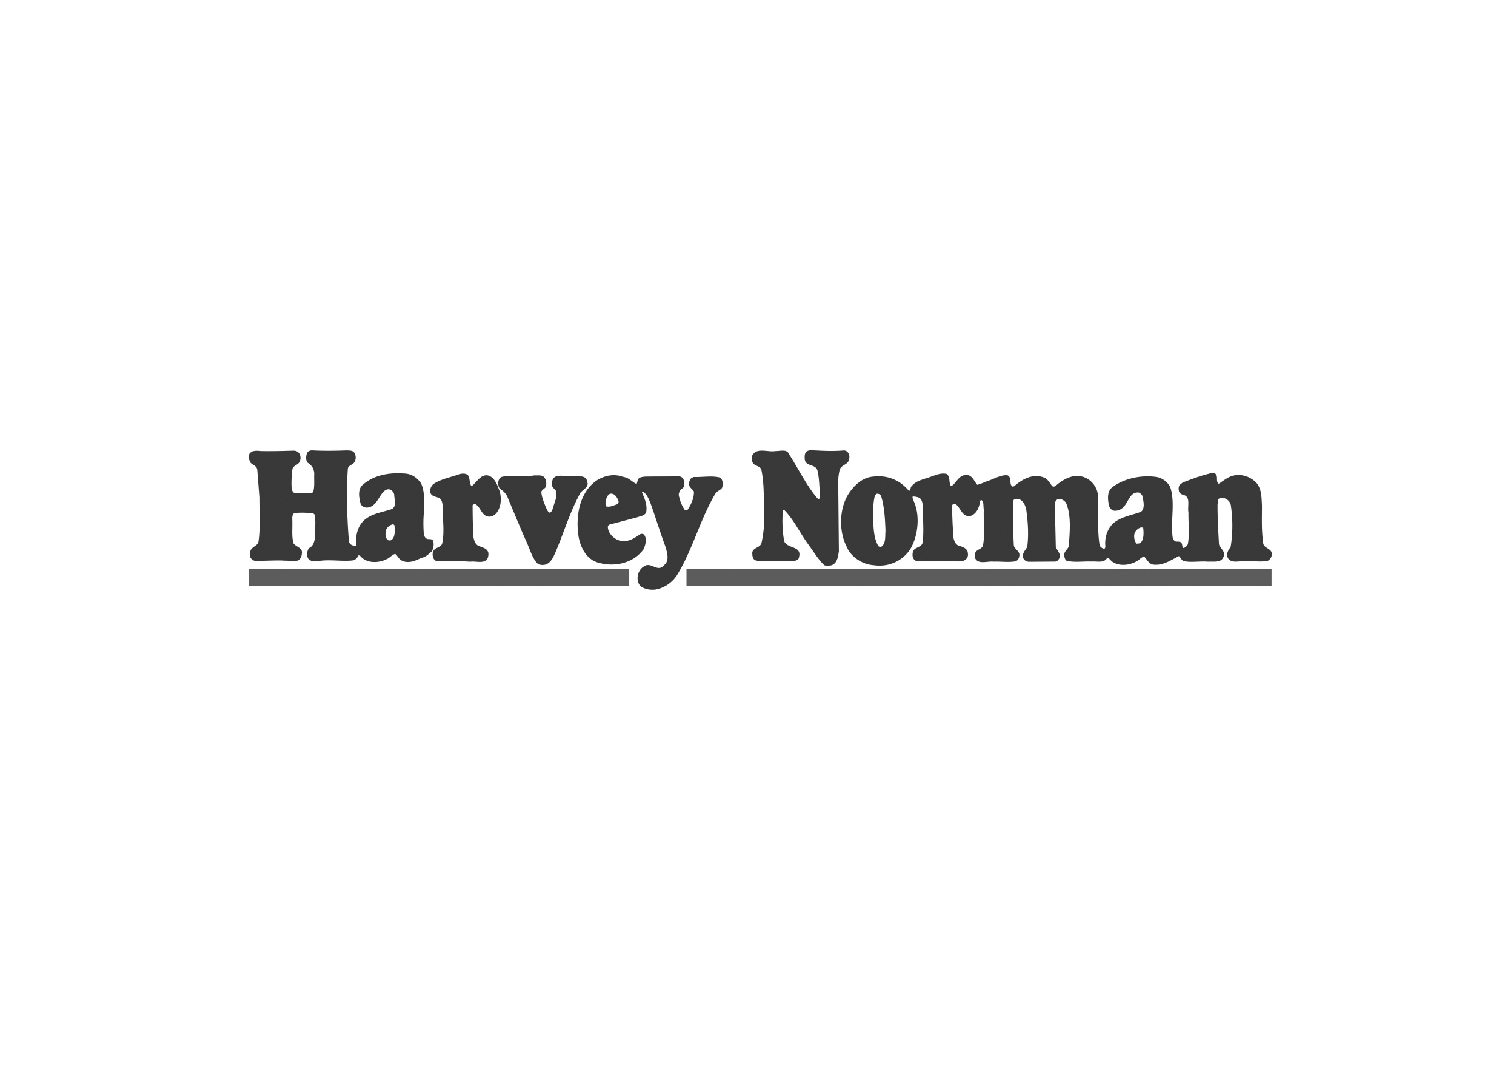 Harvey Norman-01.jpg